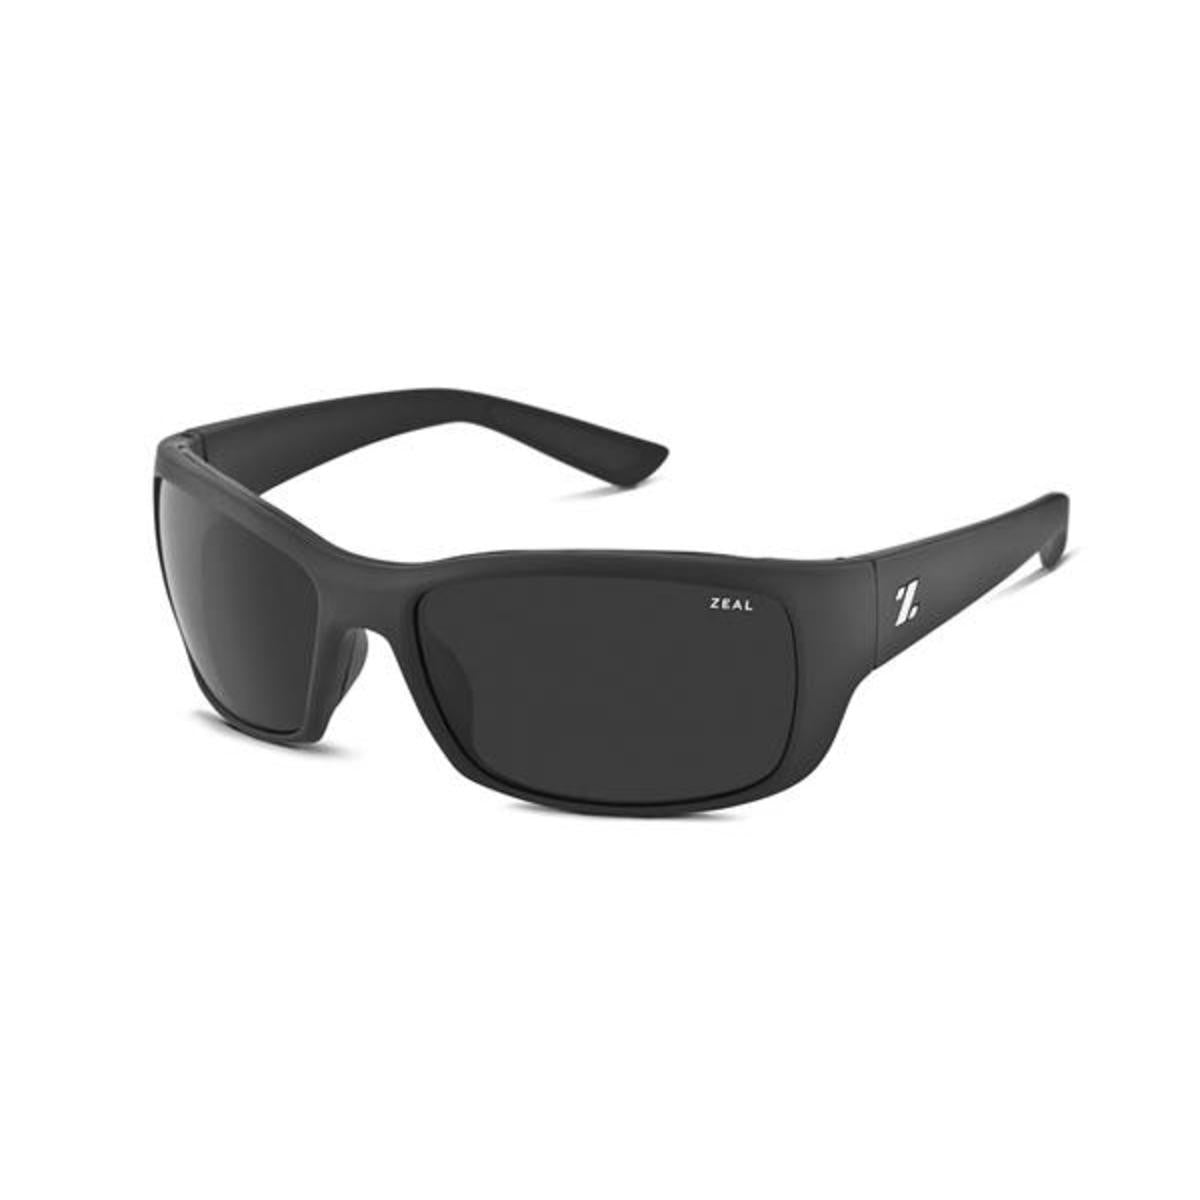 Zeal Tracker Sunglasses